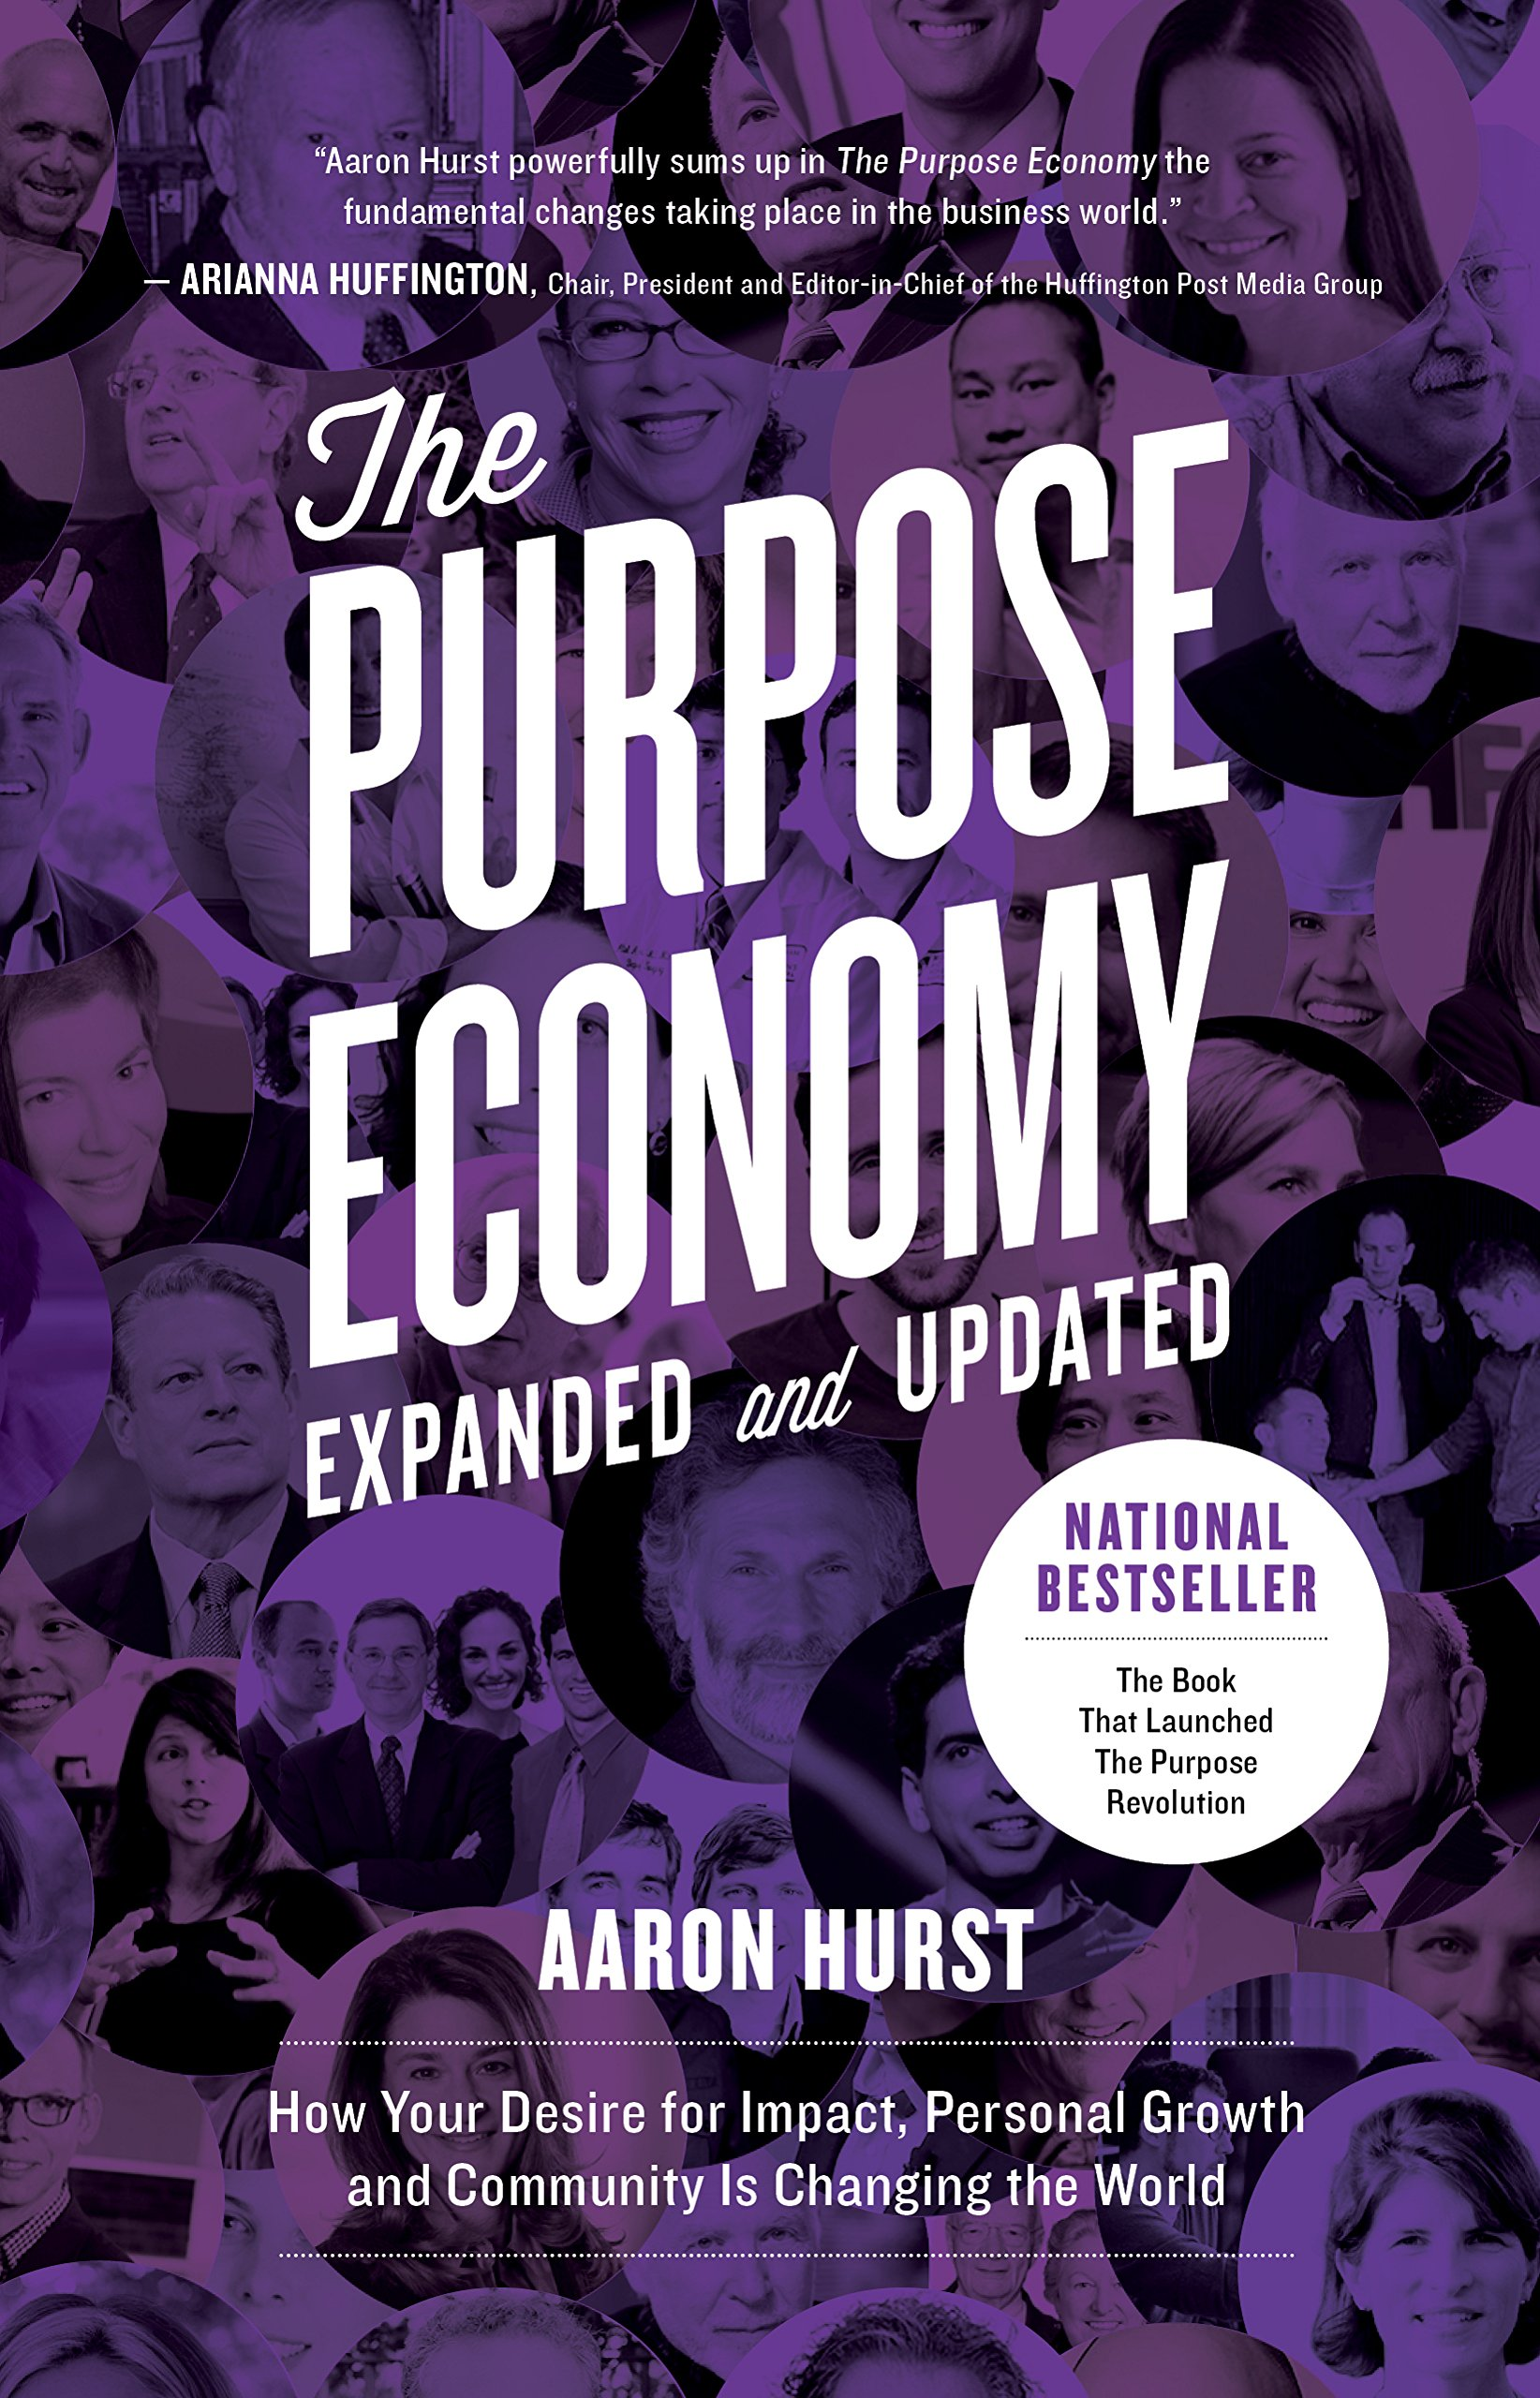 Image OfThe Purpose Economy, Expanded And Updated: How Your Desire For Impact, Personal Growth And Community Is Changing The World